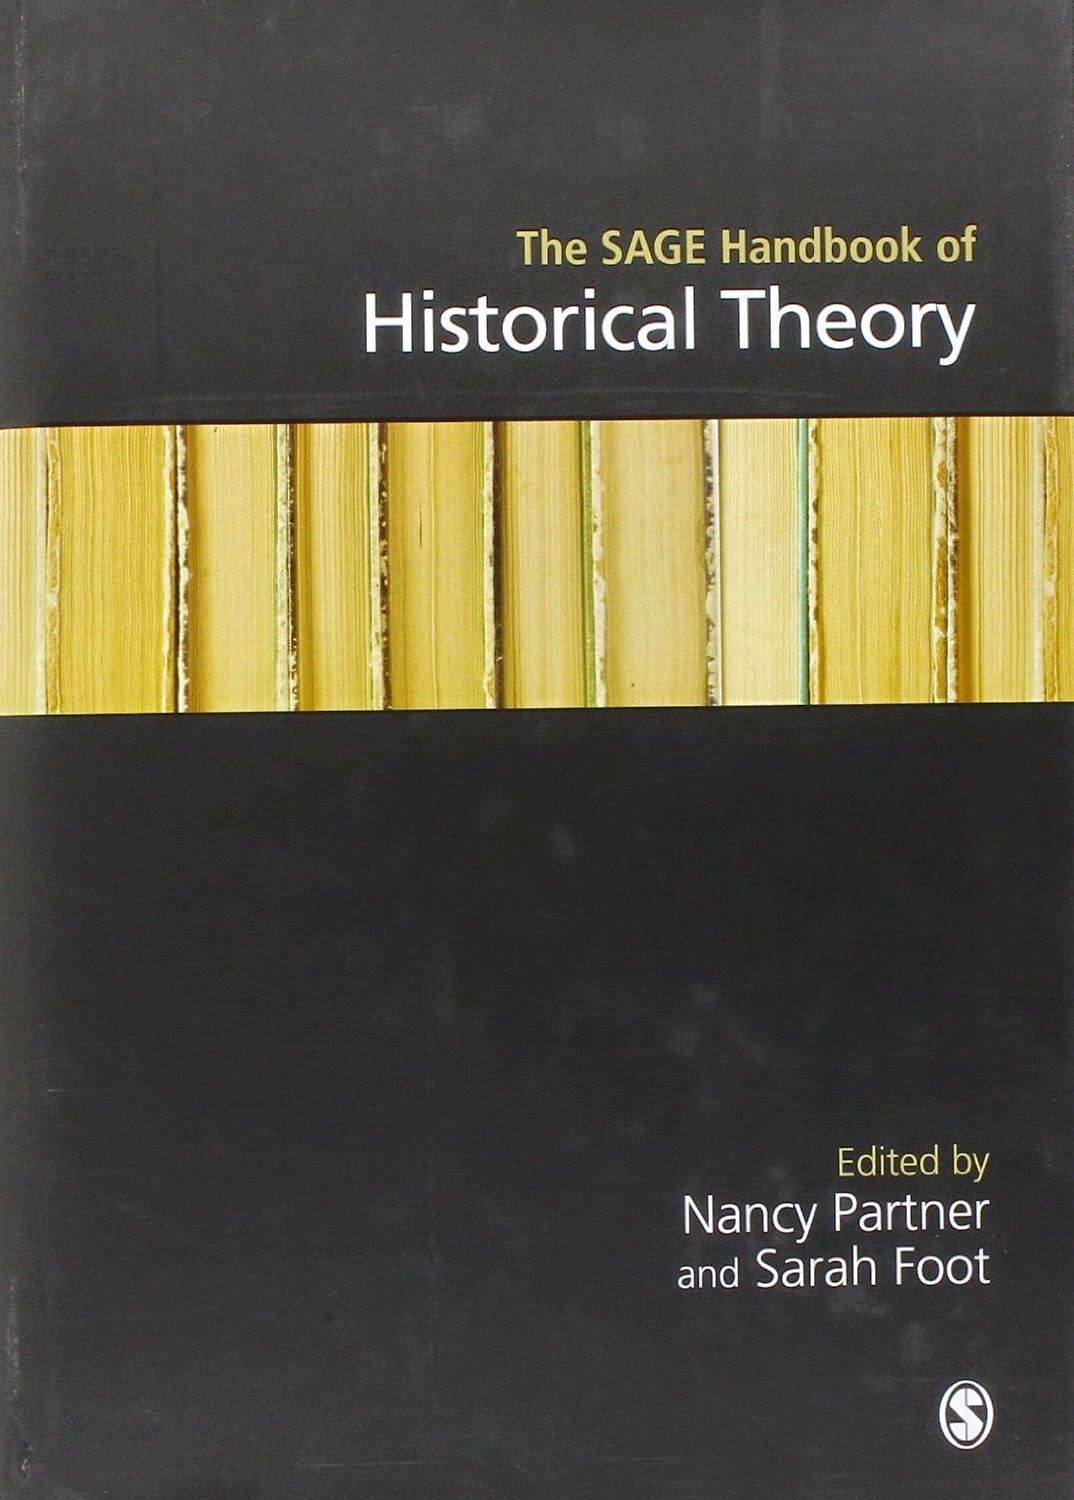 http://kingcheapebook.blogspot.com/2014/07/the-sage-handbook-of-historical-theory.html